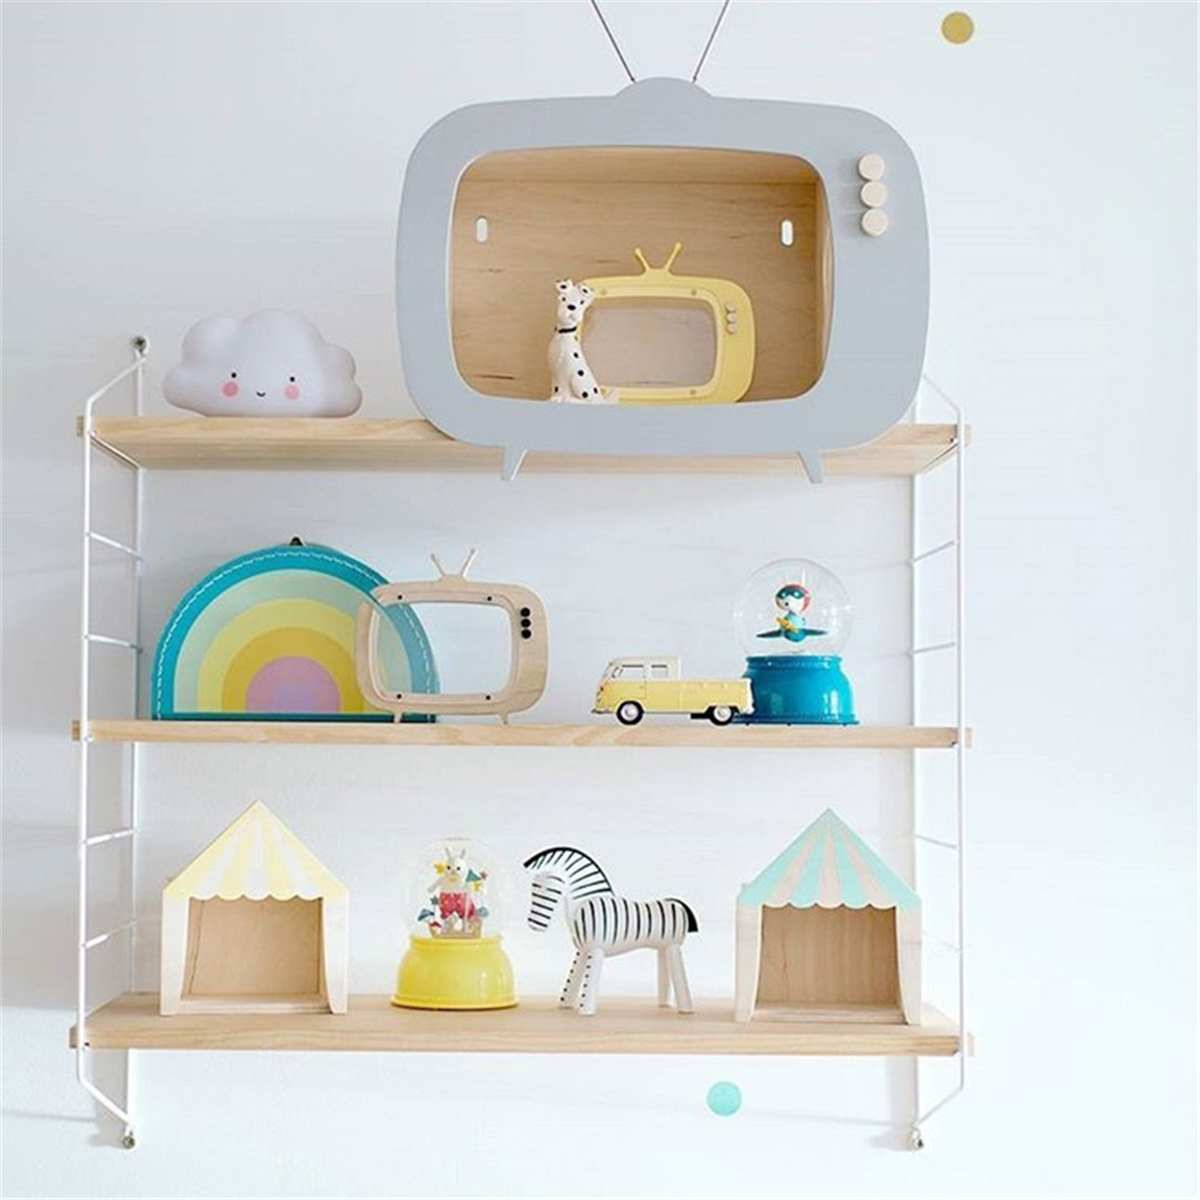 Nordic Metal Wall Shelf Wall Decor Shelf Kids Room Wooden Hanging Shelf 3 Tier Wall Display Rack DIY Wall Decoration Holder Pink